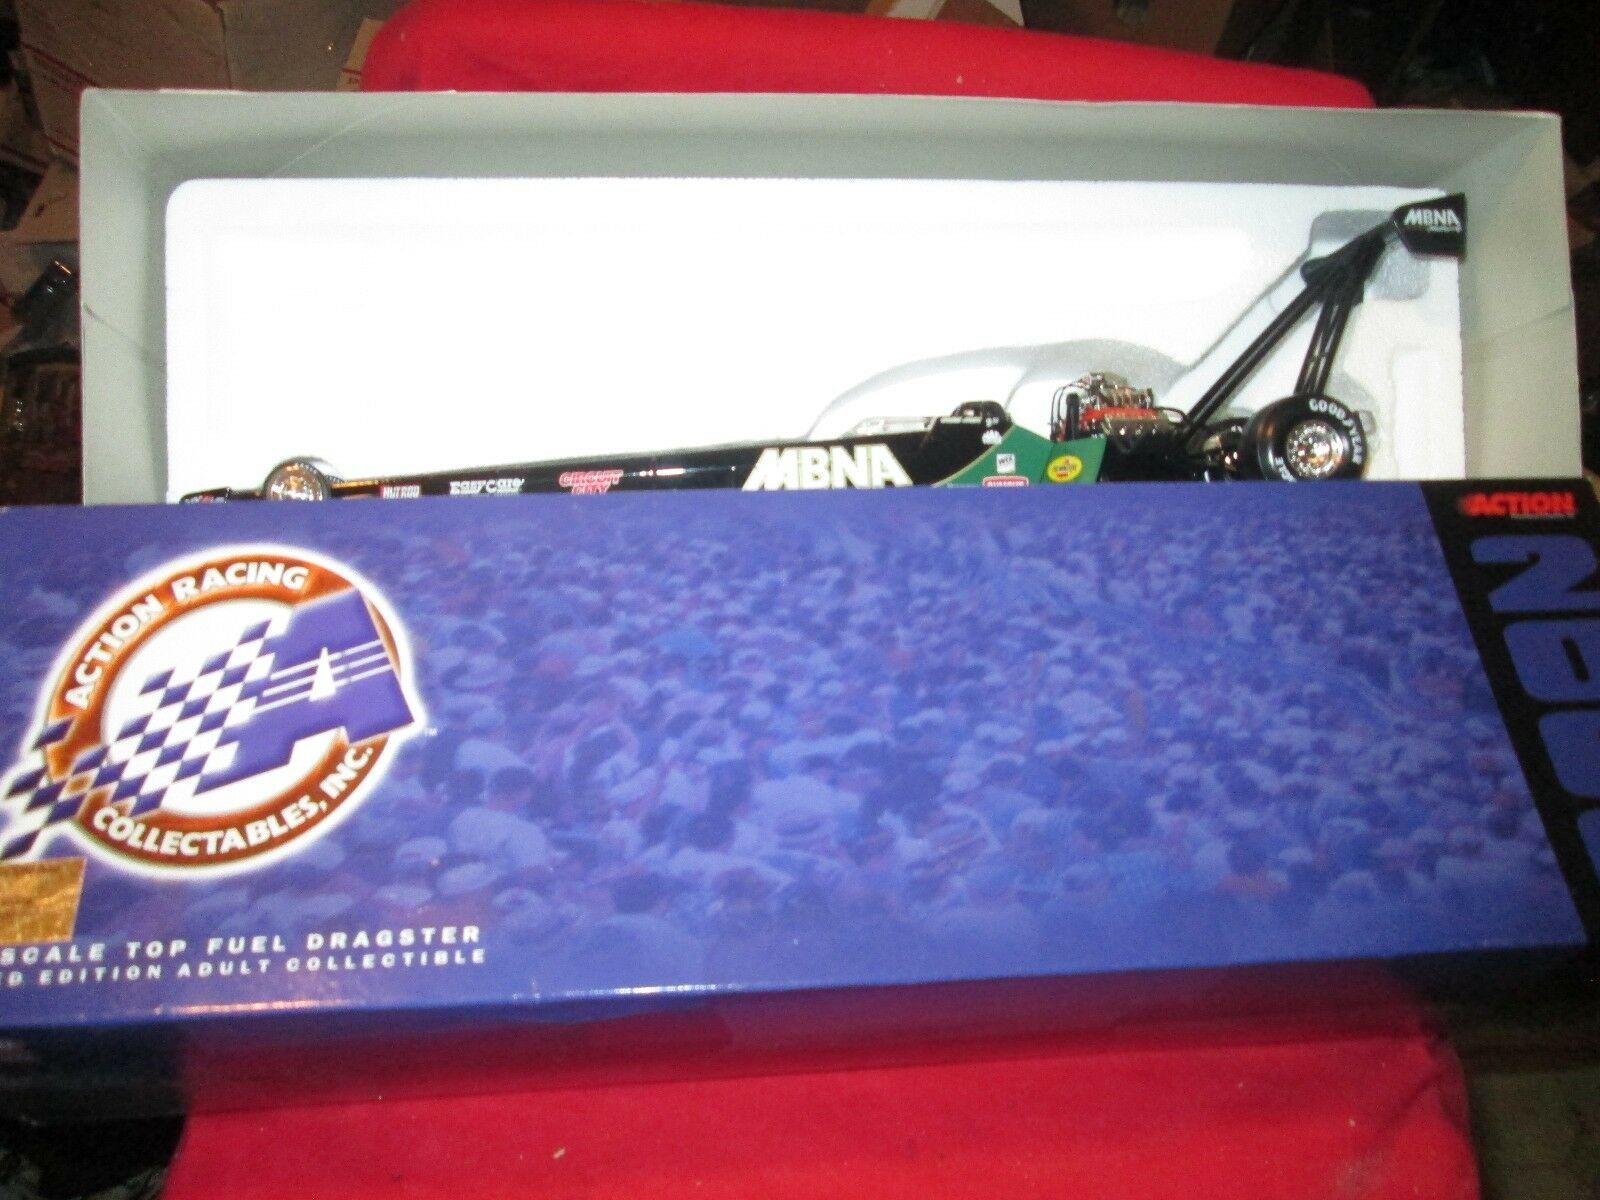 Cory McClenathan top fuel Dragster action  1 24 Scale 16  NHRA 2000 1 of 4,008